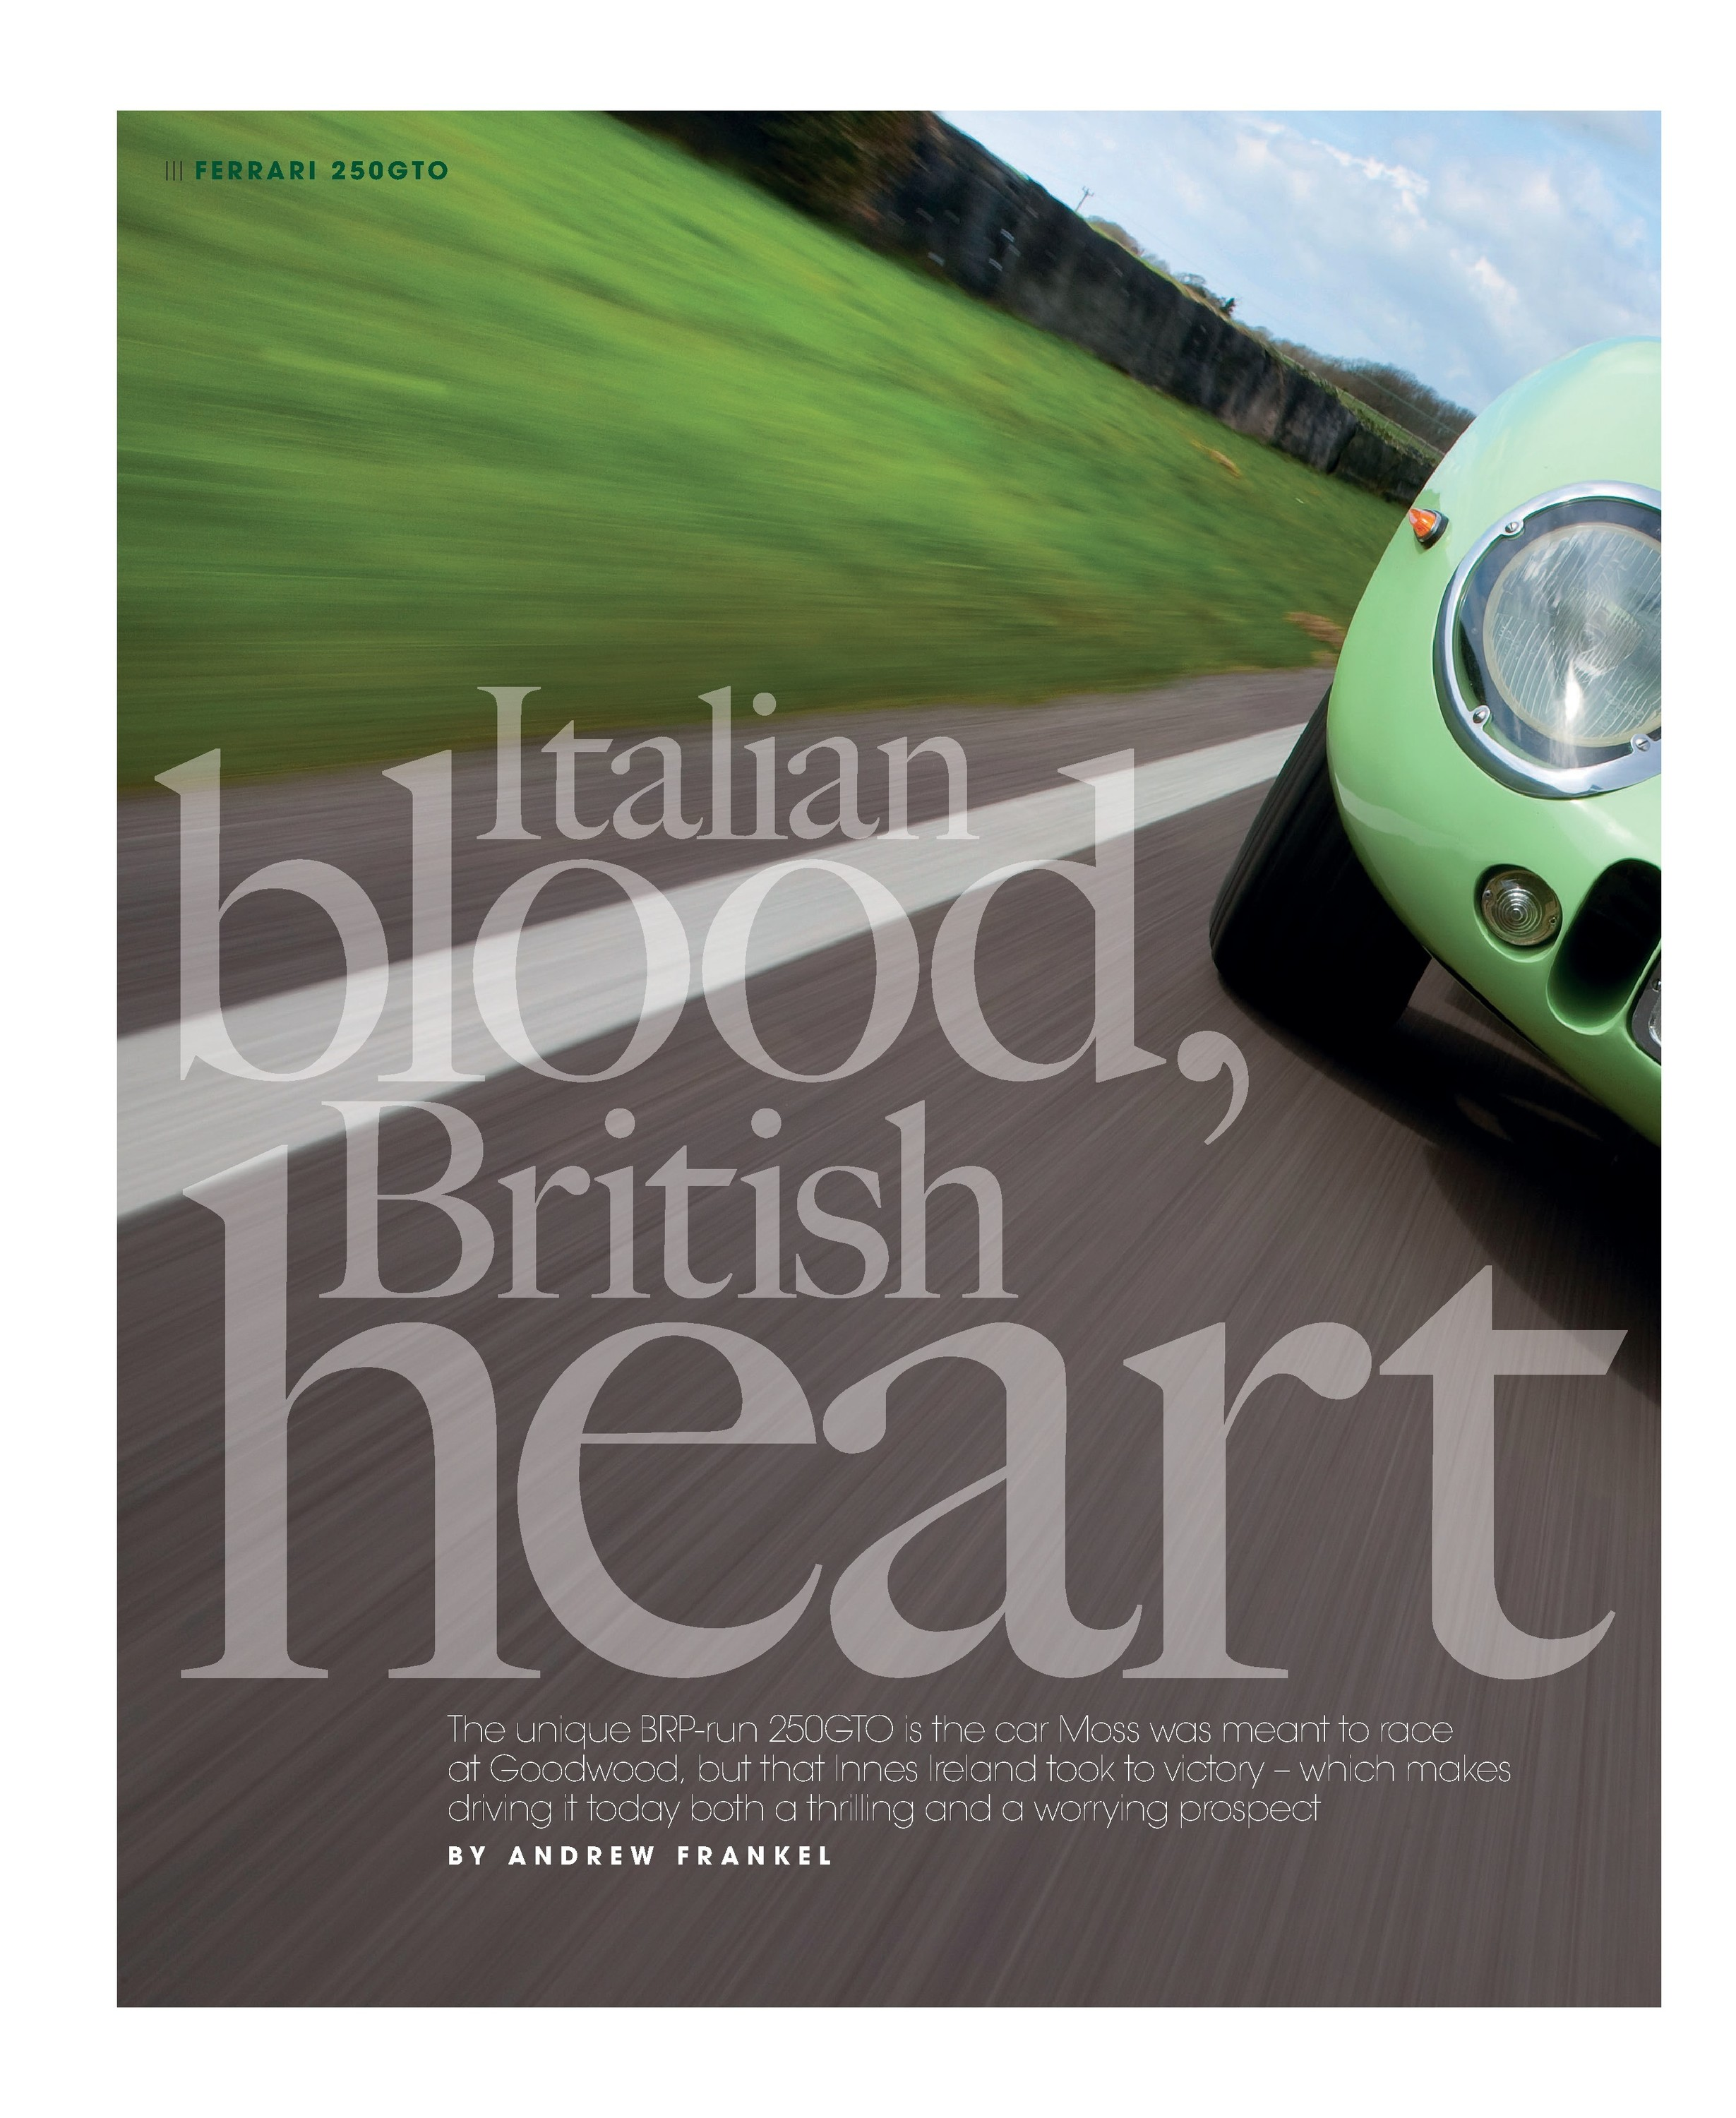 Italian blood, British heart image